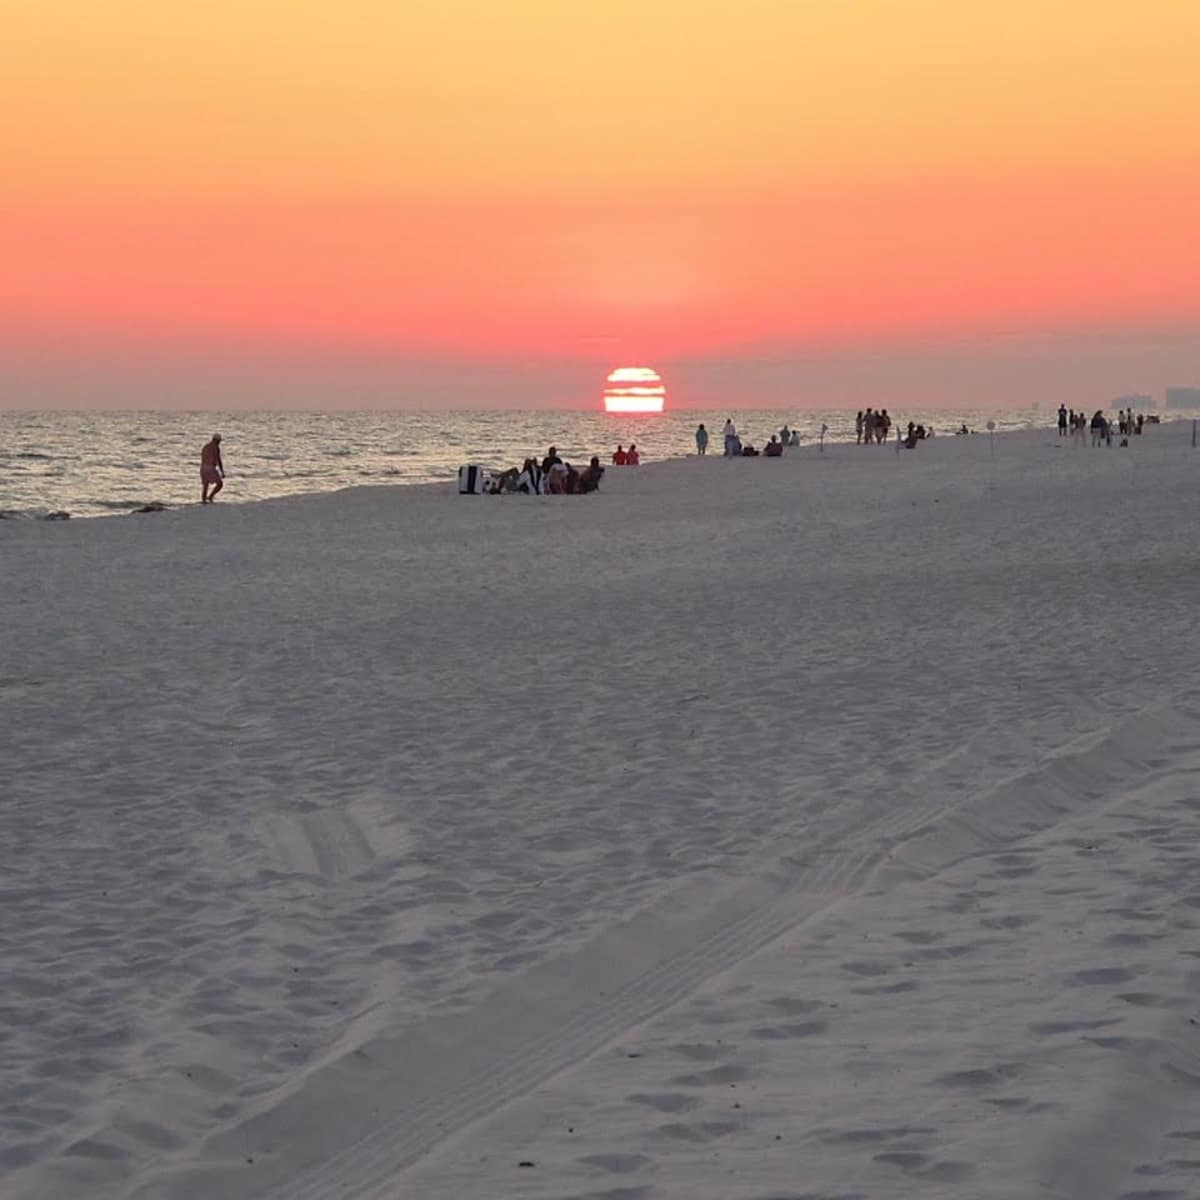 Seaside Florida beach at sunset